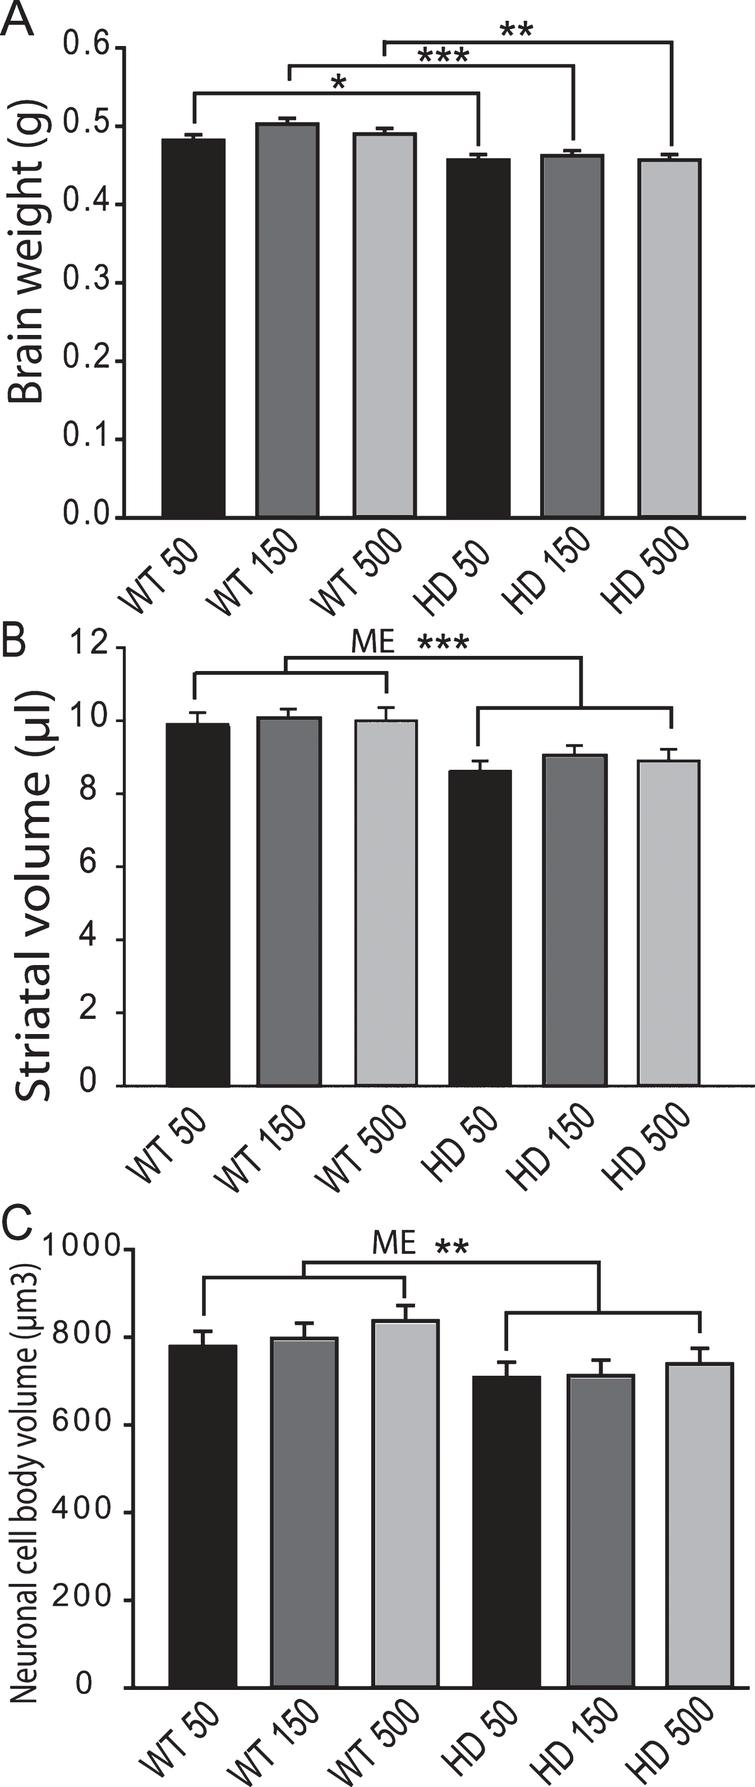 Adult iron supplementation does not exacerbate neurodegeneration markers in YAC128 HD mice. Mice were maintained on diets from 2–12 months of age. A. Brain weights of YAC128 HD and wild-type mice fed one of three custom iron diets. YAC128 mice have significantly decreased brain weights compared to wild-type litter-mates. Iron supplementation has no effect on brain weight in HD or wild-type mice. n = 12–15, B. Striatal volumes are decreased by HD but not by dietary iron level. There was a significant effect of genotype with YAC128 HD mice having lower striatal volumes across all iron groups, n = 4–6, C. Striatal cell body volumes are not altered by dietary iron intake level in YAC128 HD or wild-type mice. There was a significant effect of genotype with YAC128 HD mice having lower cell volumes across all iron groups. ME = main effect comparison. P-values: *p < 0.05, **p < 0.01, ***p < 0.001, n = 4–6.